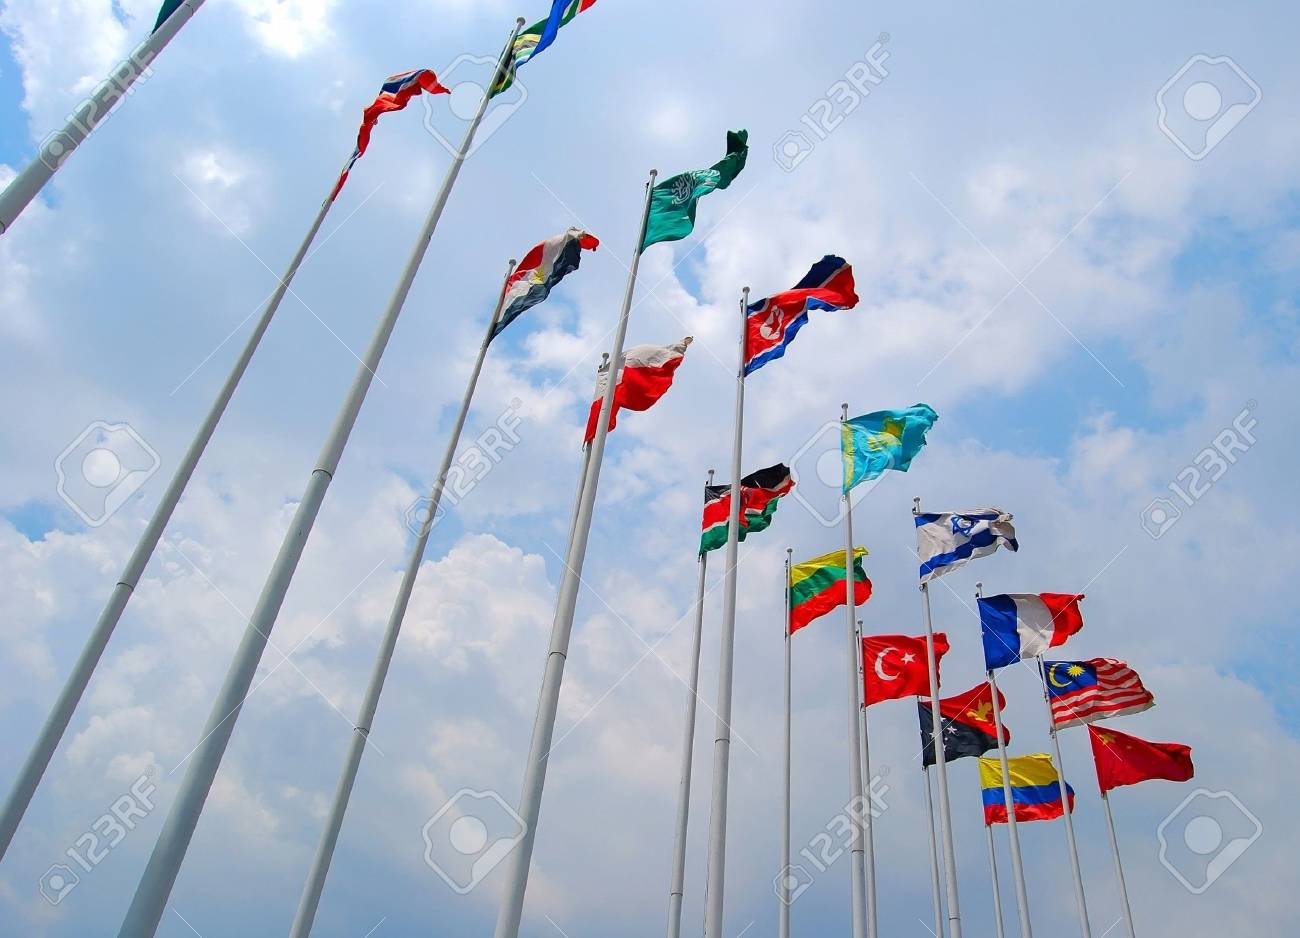 Group of Flags against cloudy sky. Stock Photo - 7319069